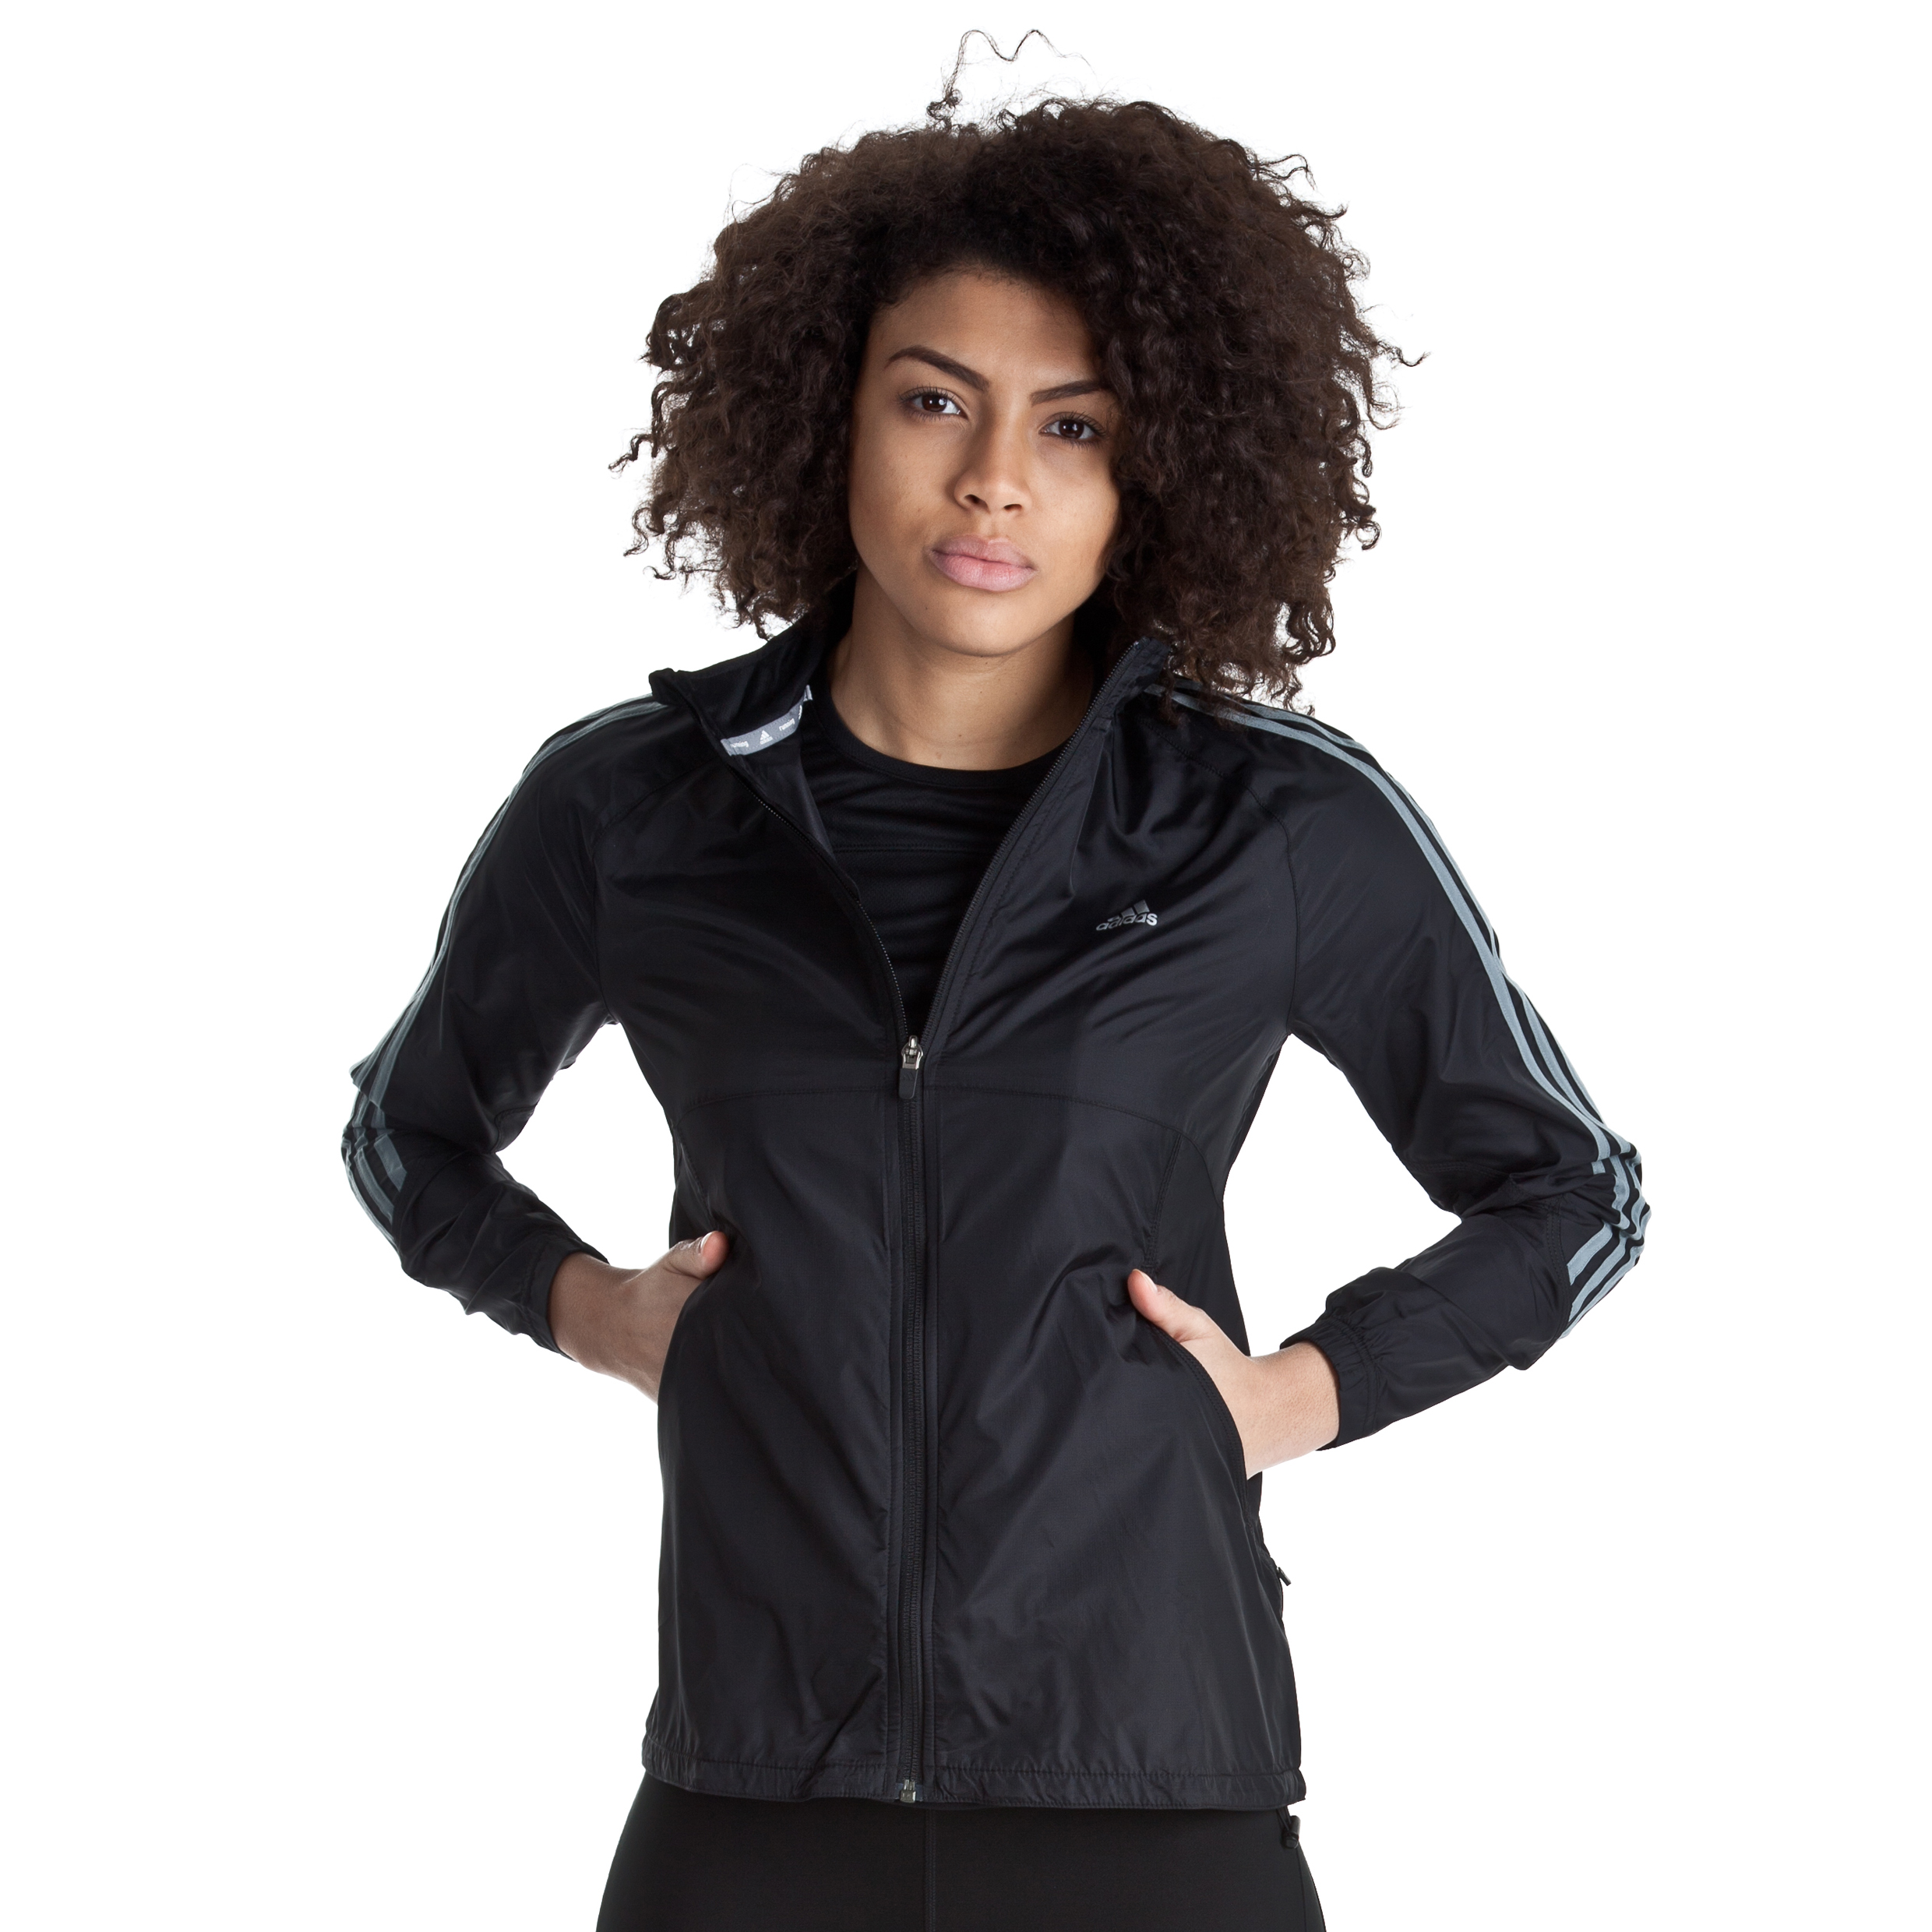 Adidas Response DS Wind Jacket - Black/Tech Grey - Womens